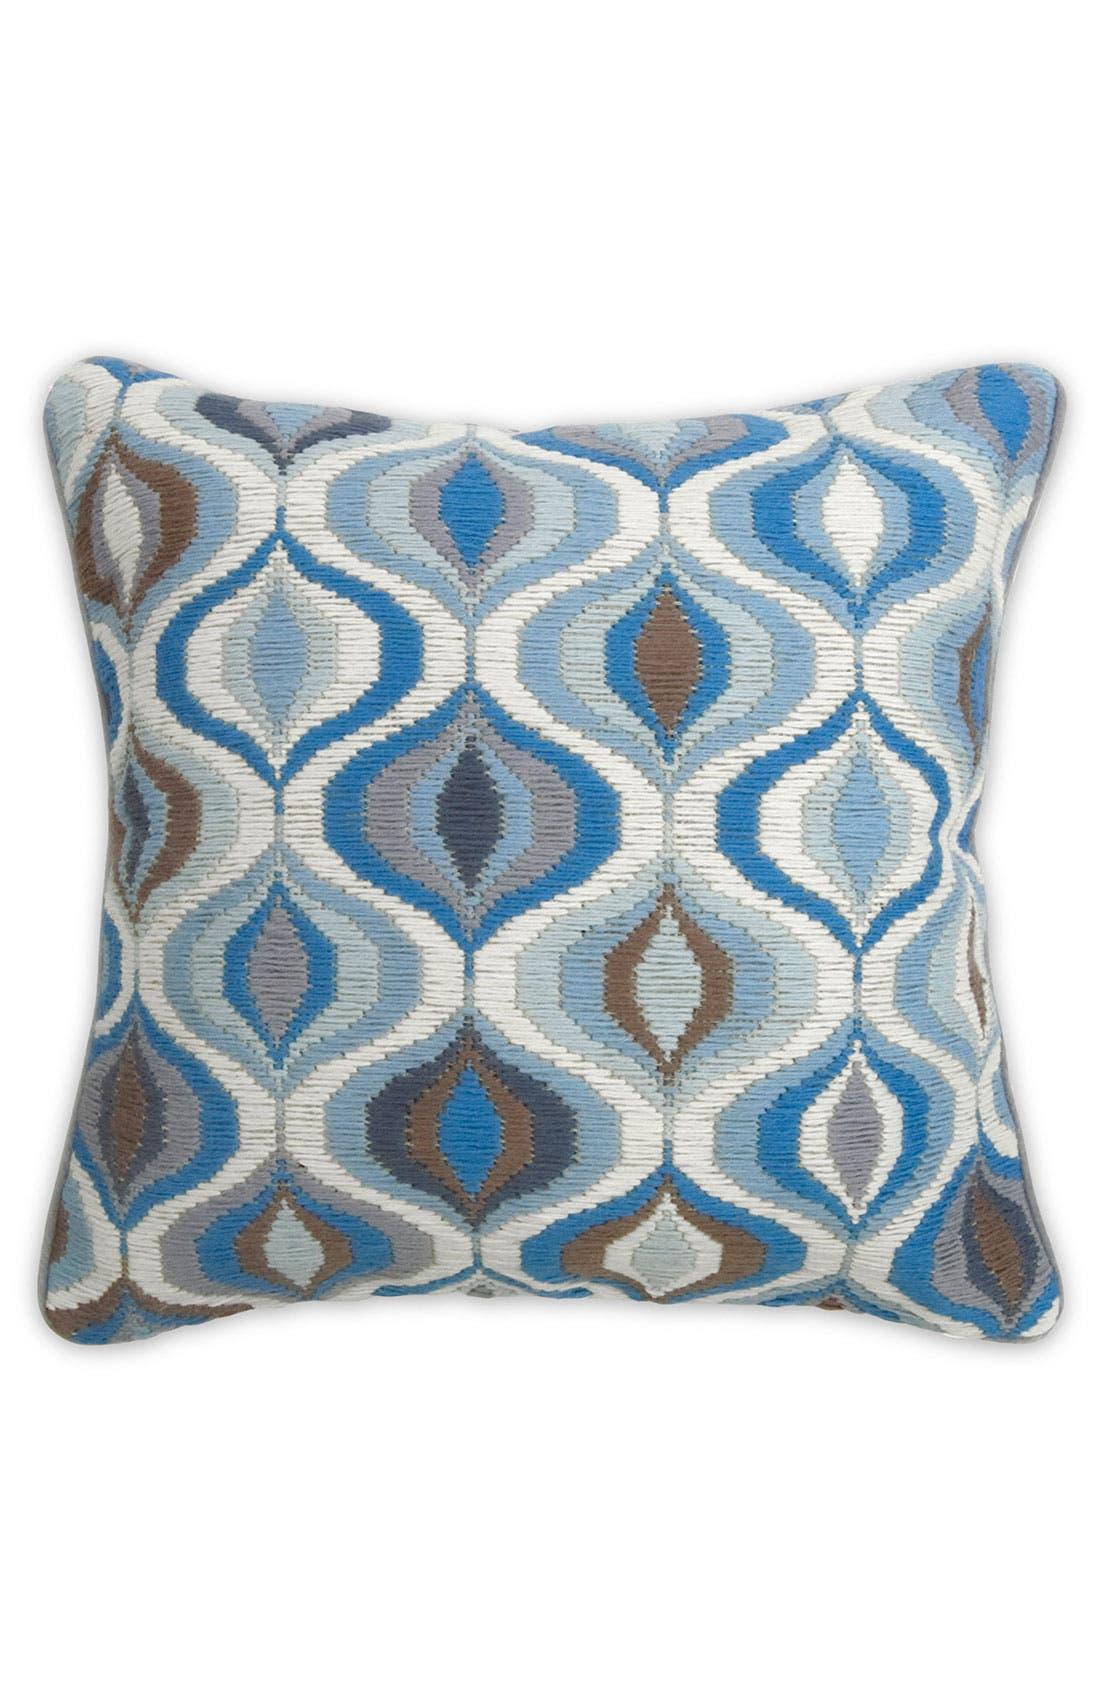 Main Image - Jonathan Adler 'Bargello Waves' Pillow